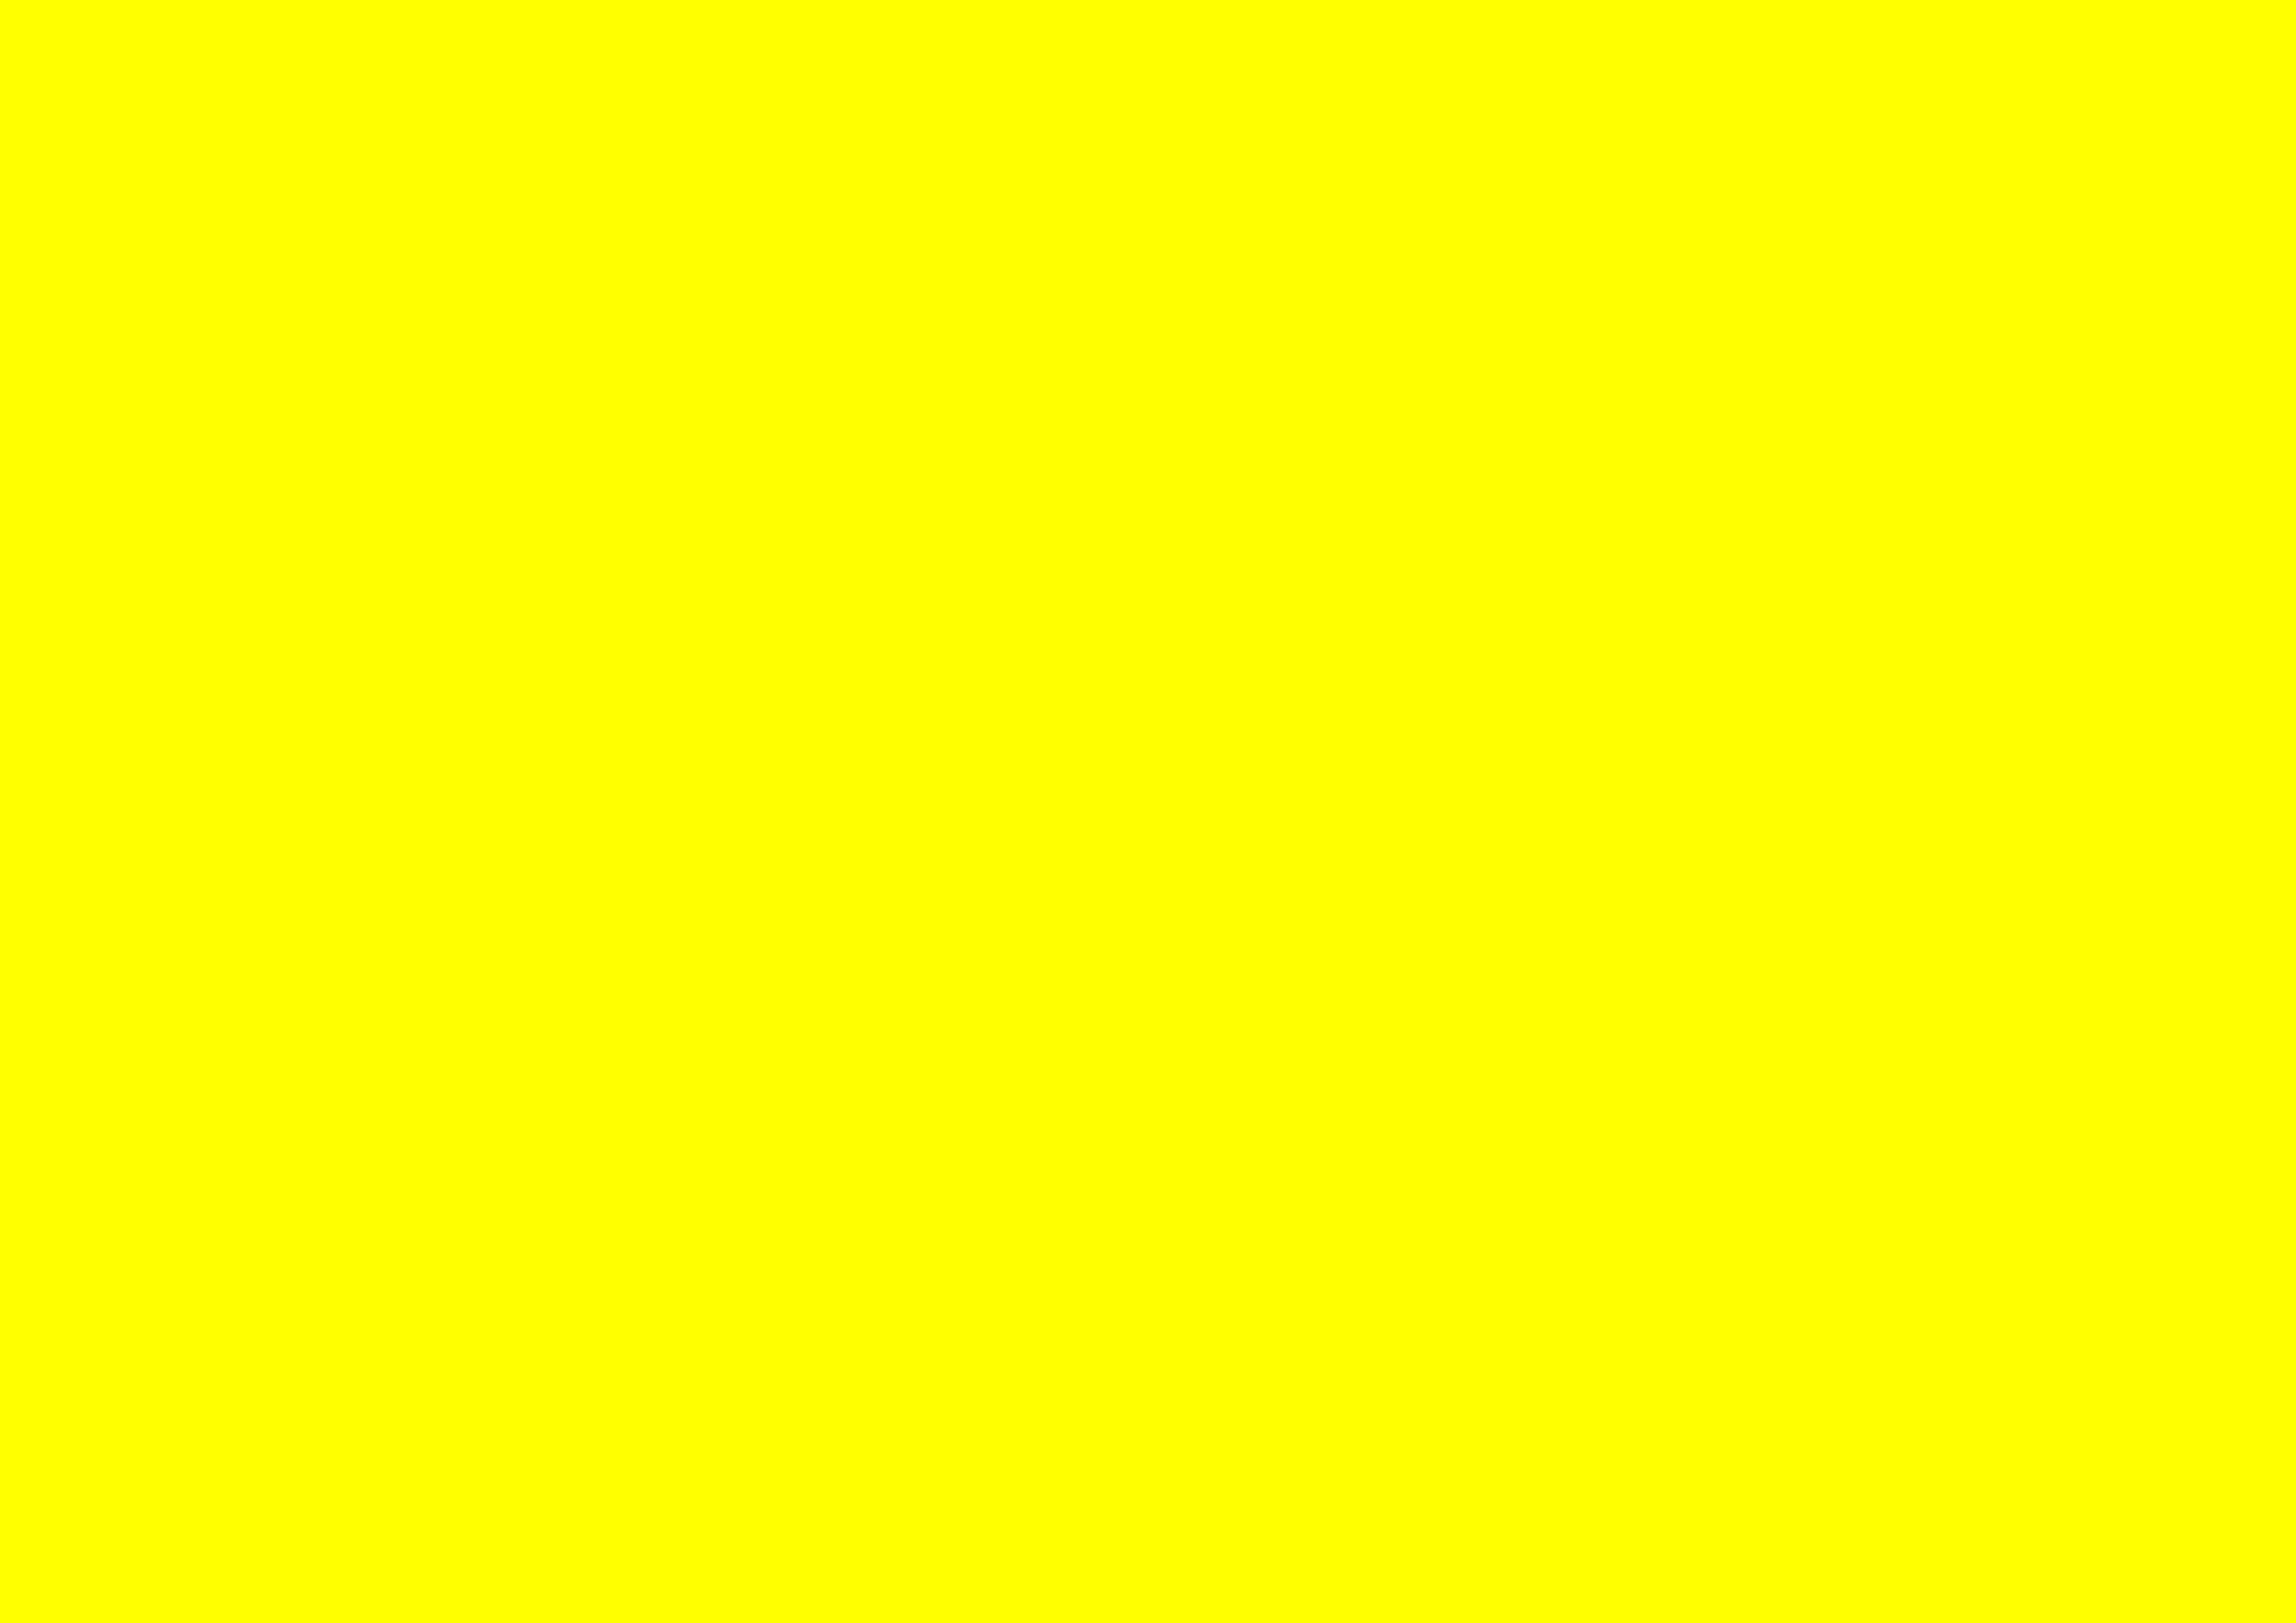 3508x2480 Yellow Solid Color Background